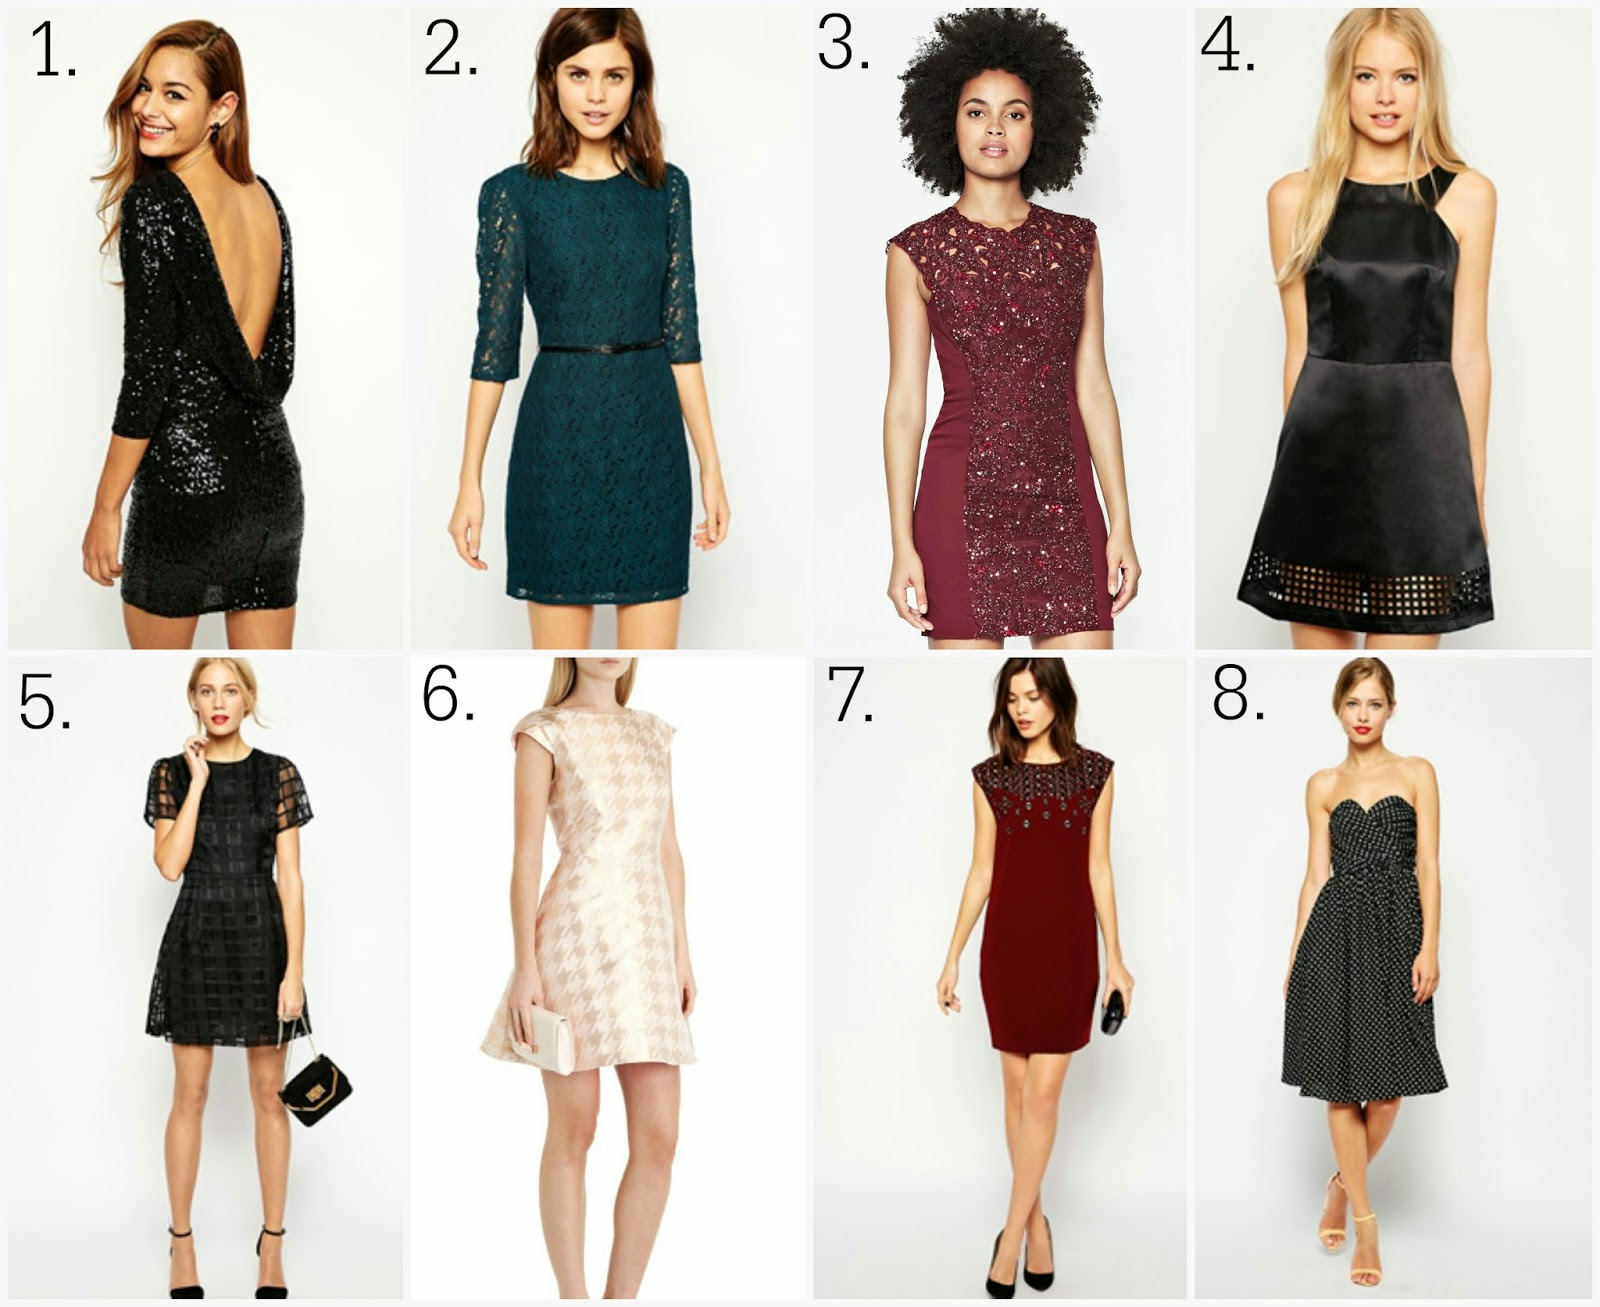 christmas party dresses 2014 lux life london a luxury lifestyle blog - Christmas Party Dresses